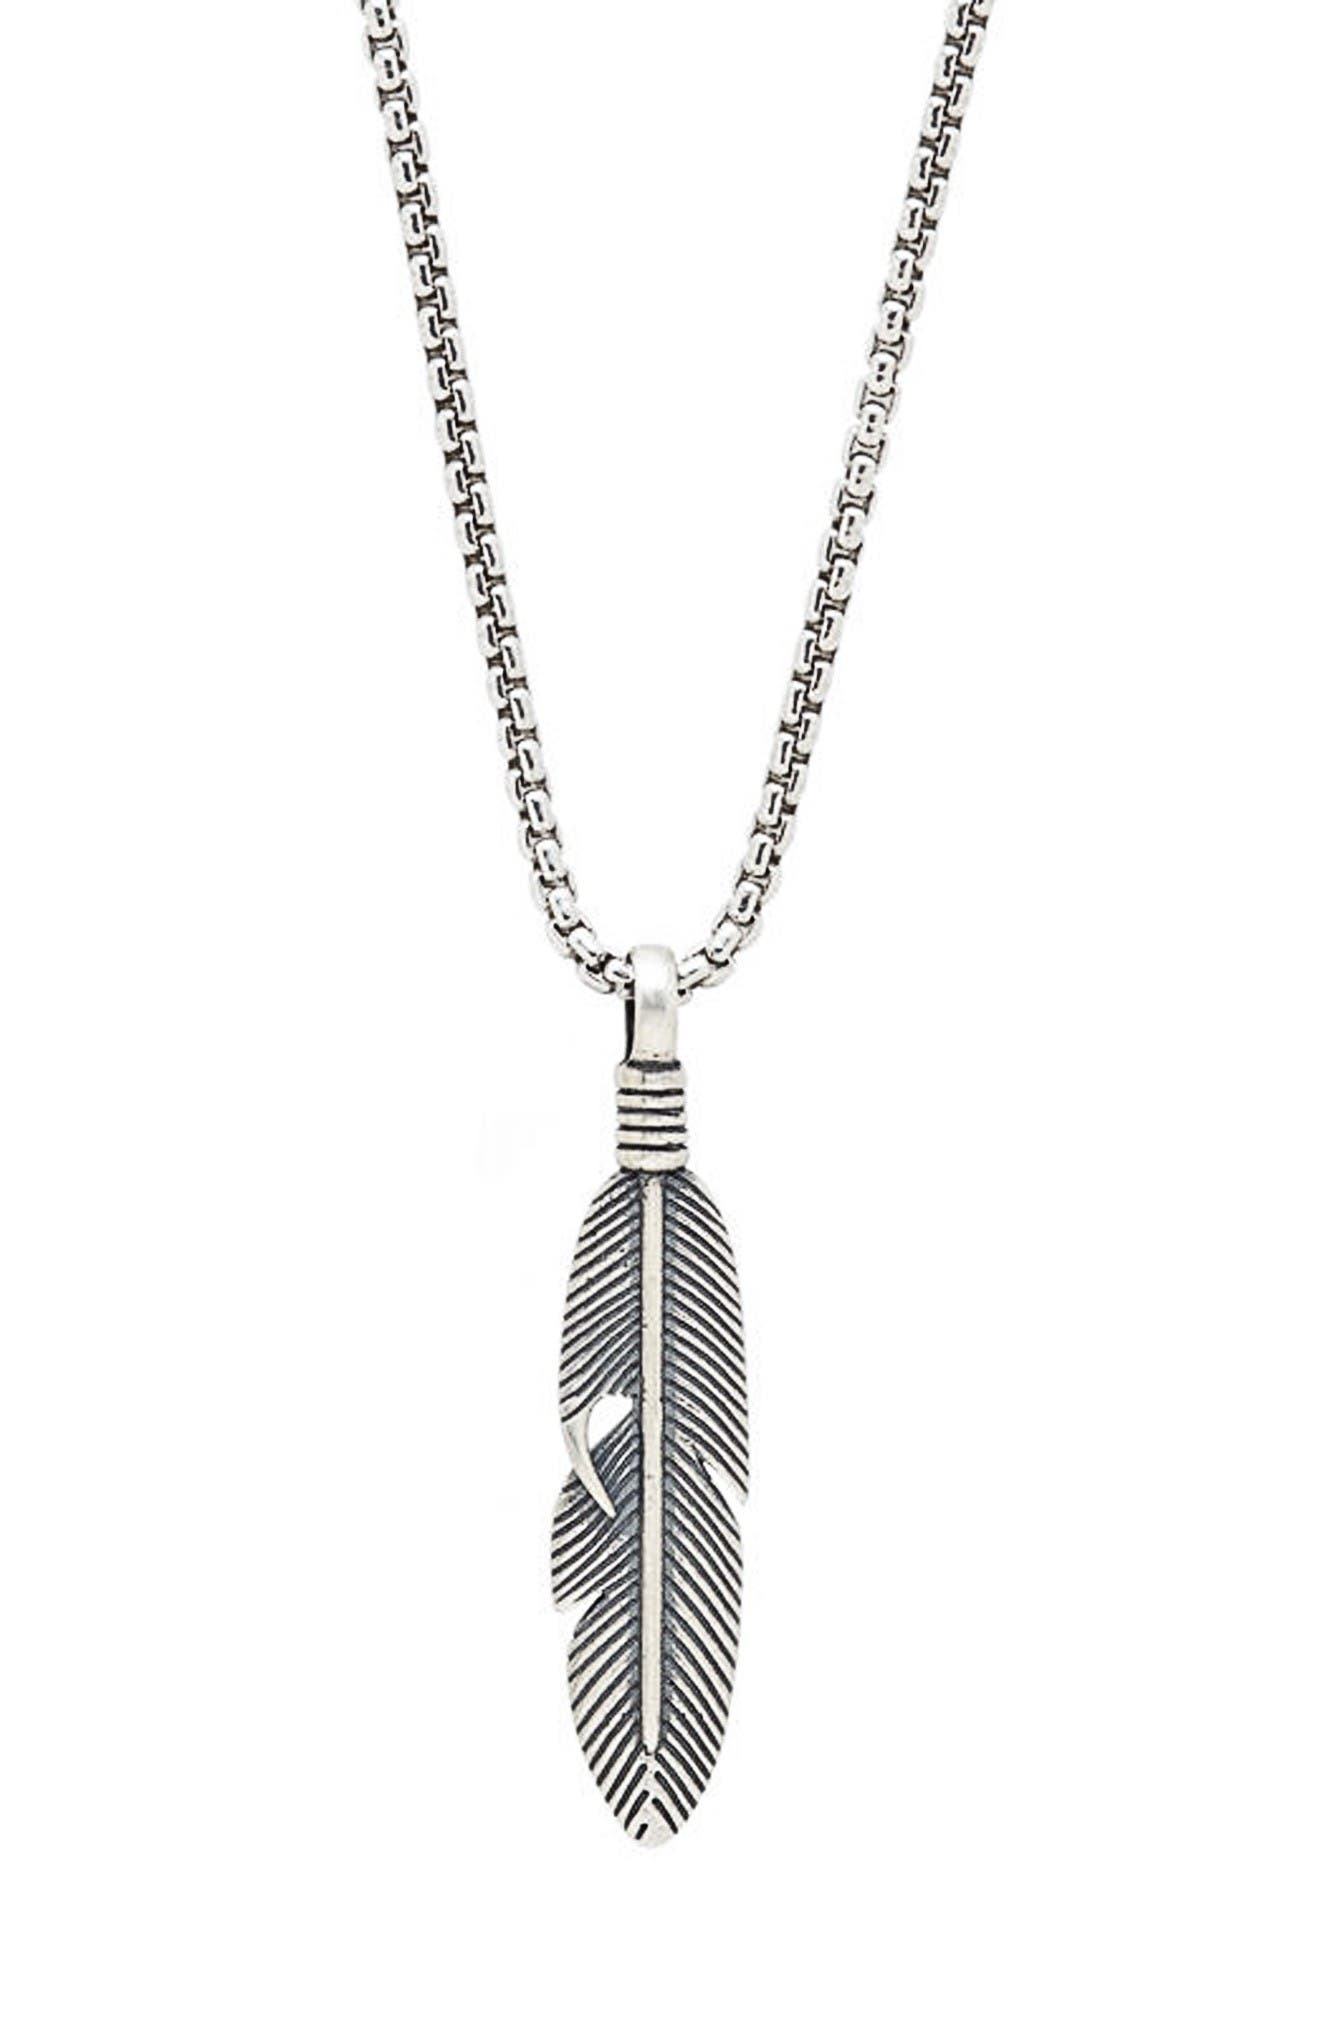 DEGS & SAL Feather Pendant Necklace